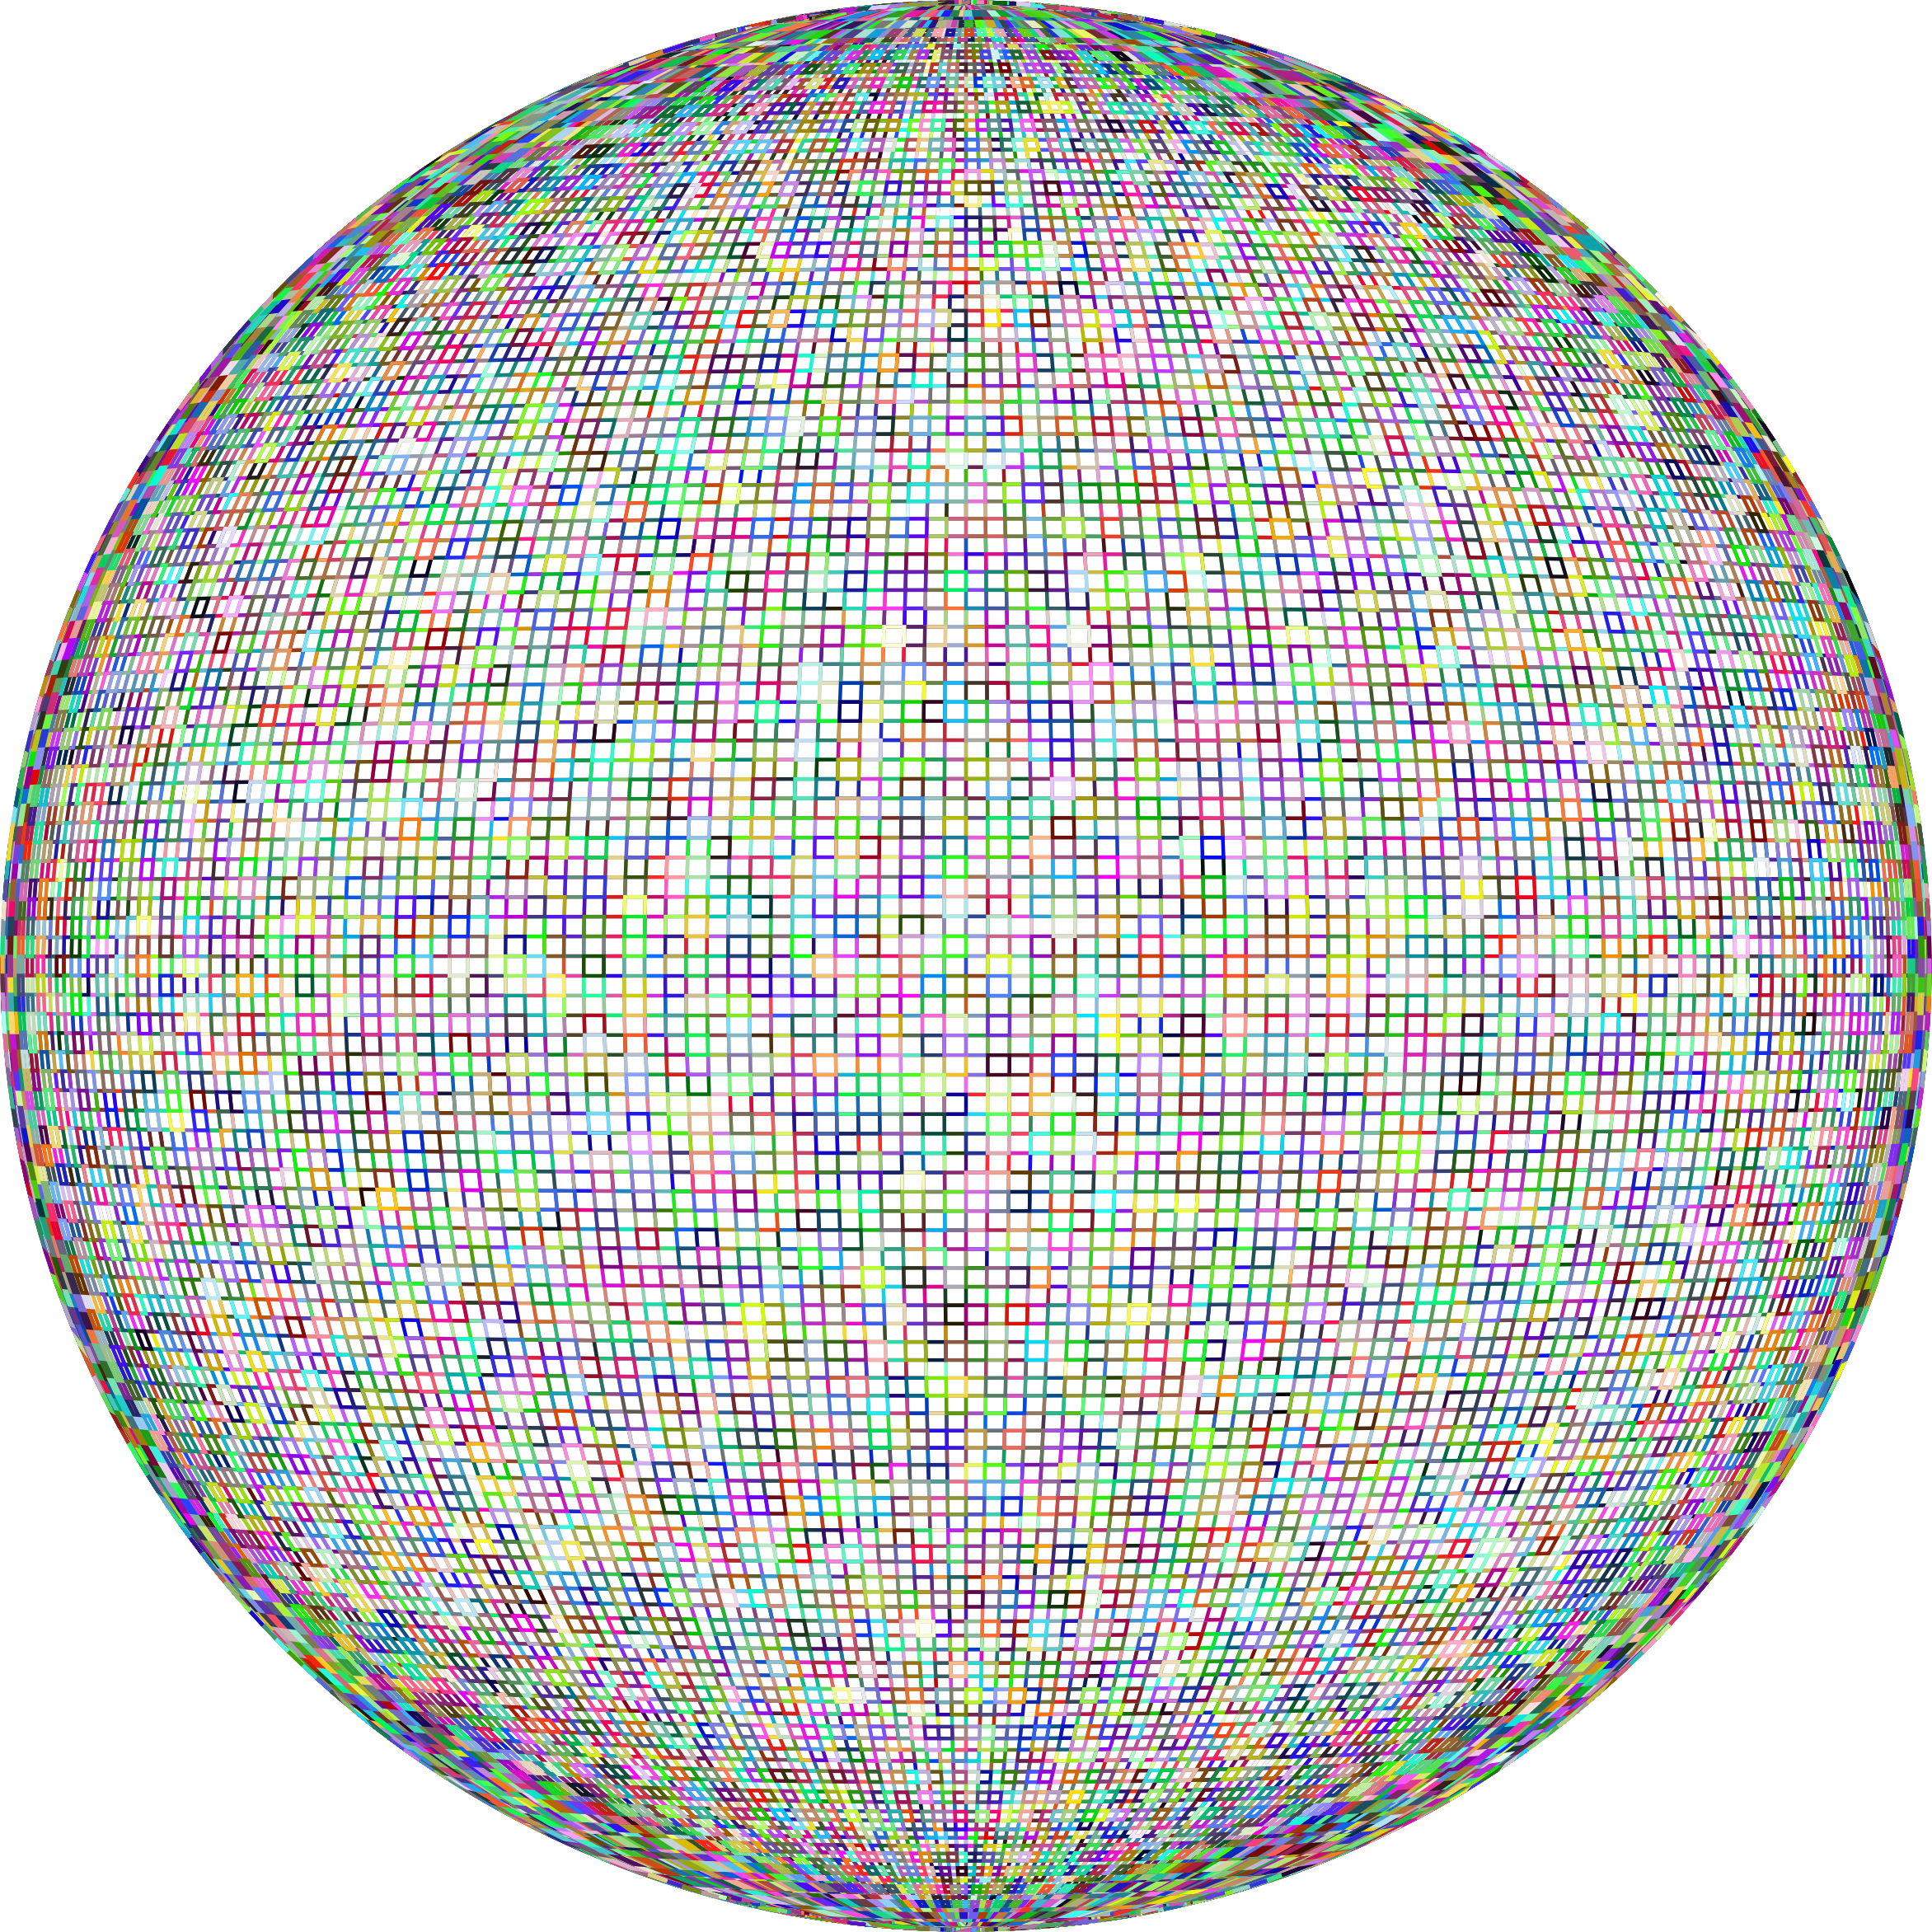 Prismatic Wireframe Sphere No Background by GDJ